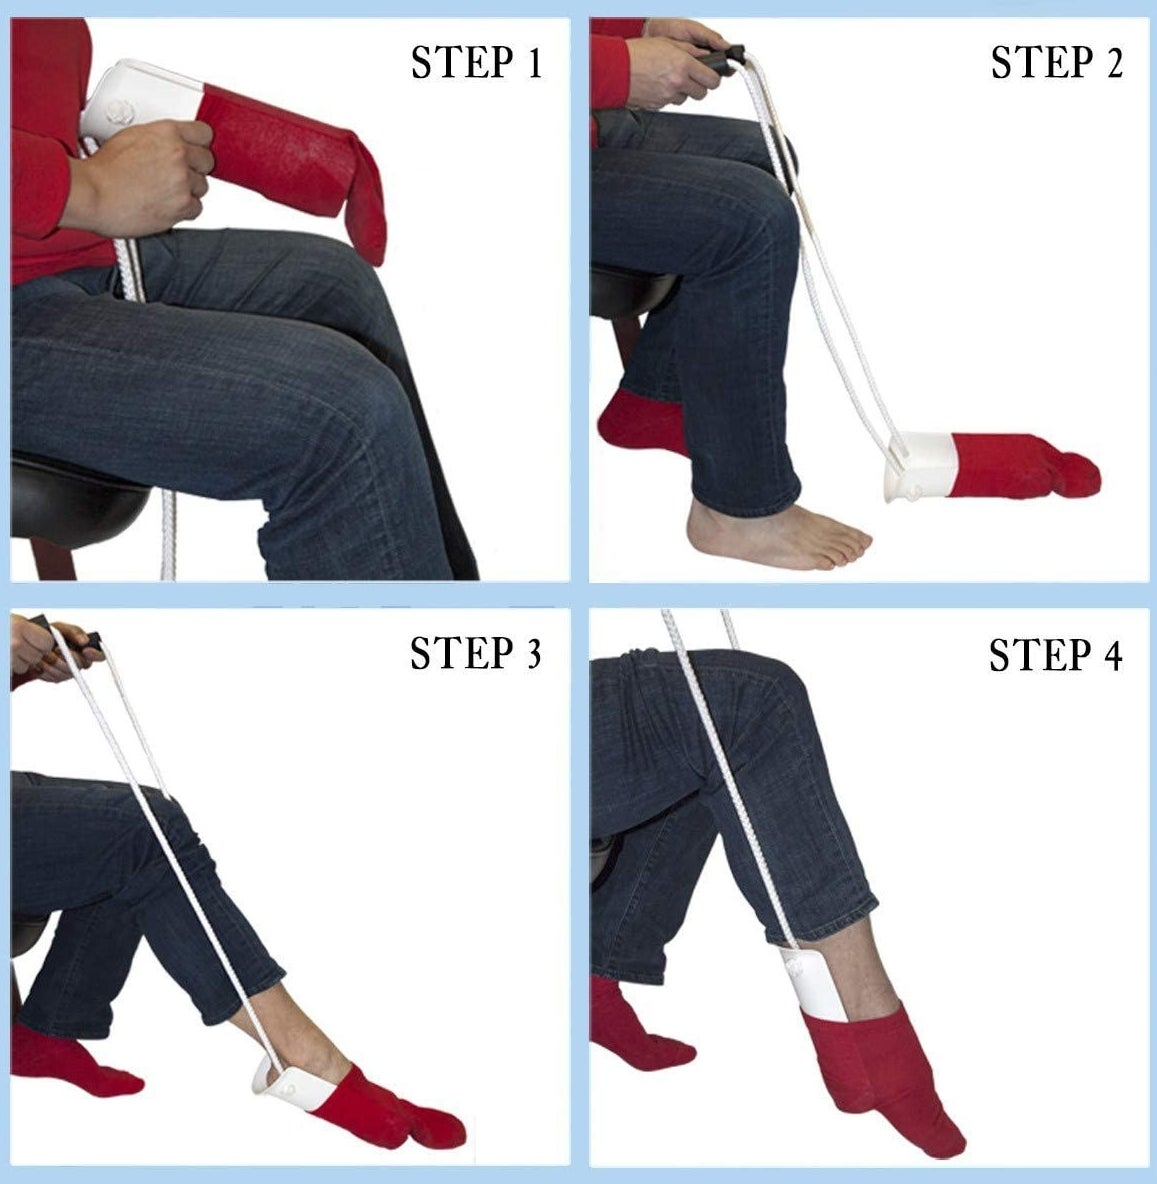 four steps of person using the curved piece of plastic with ropes attached to slip on a sock